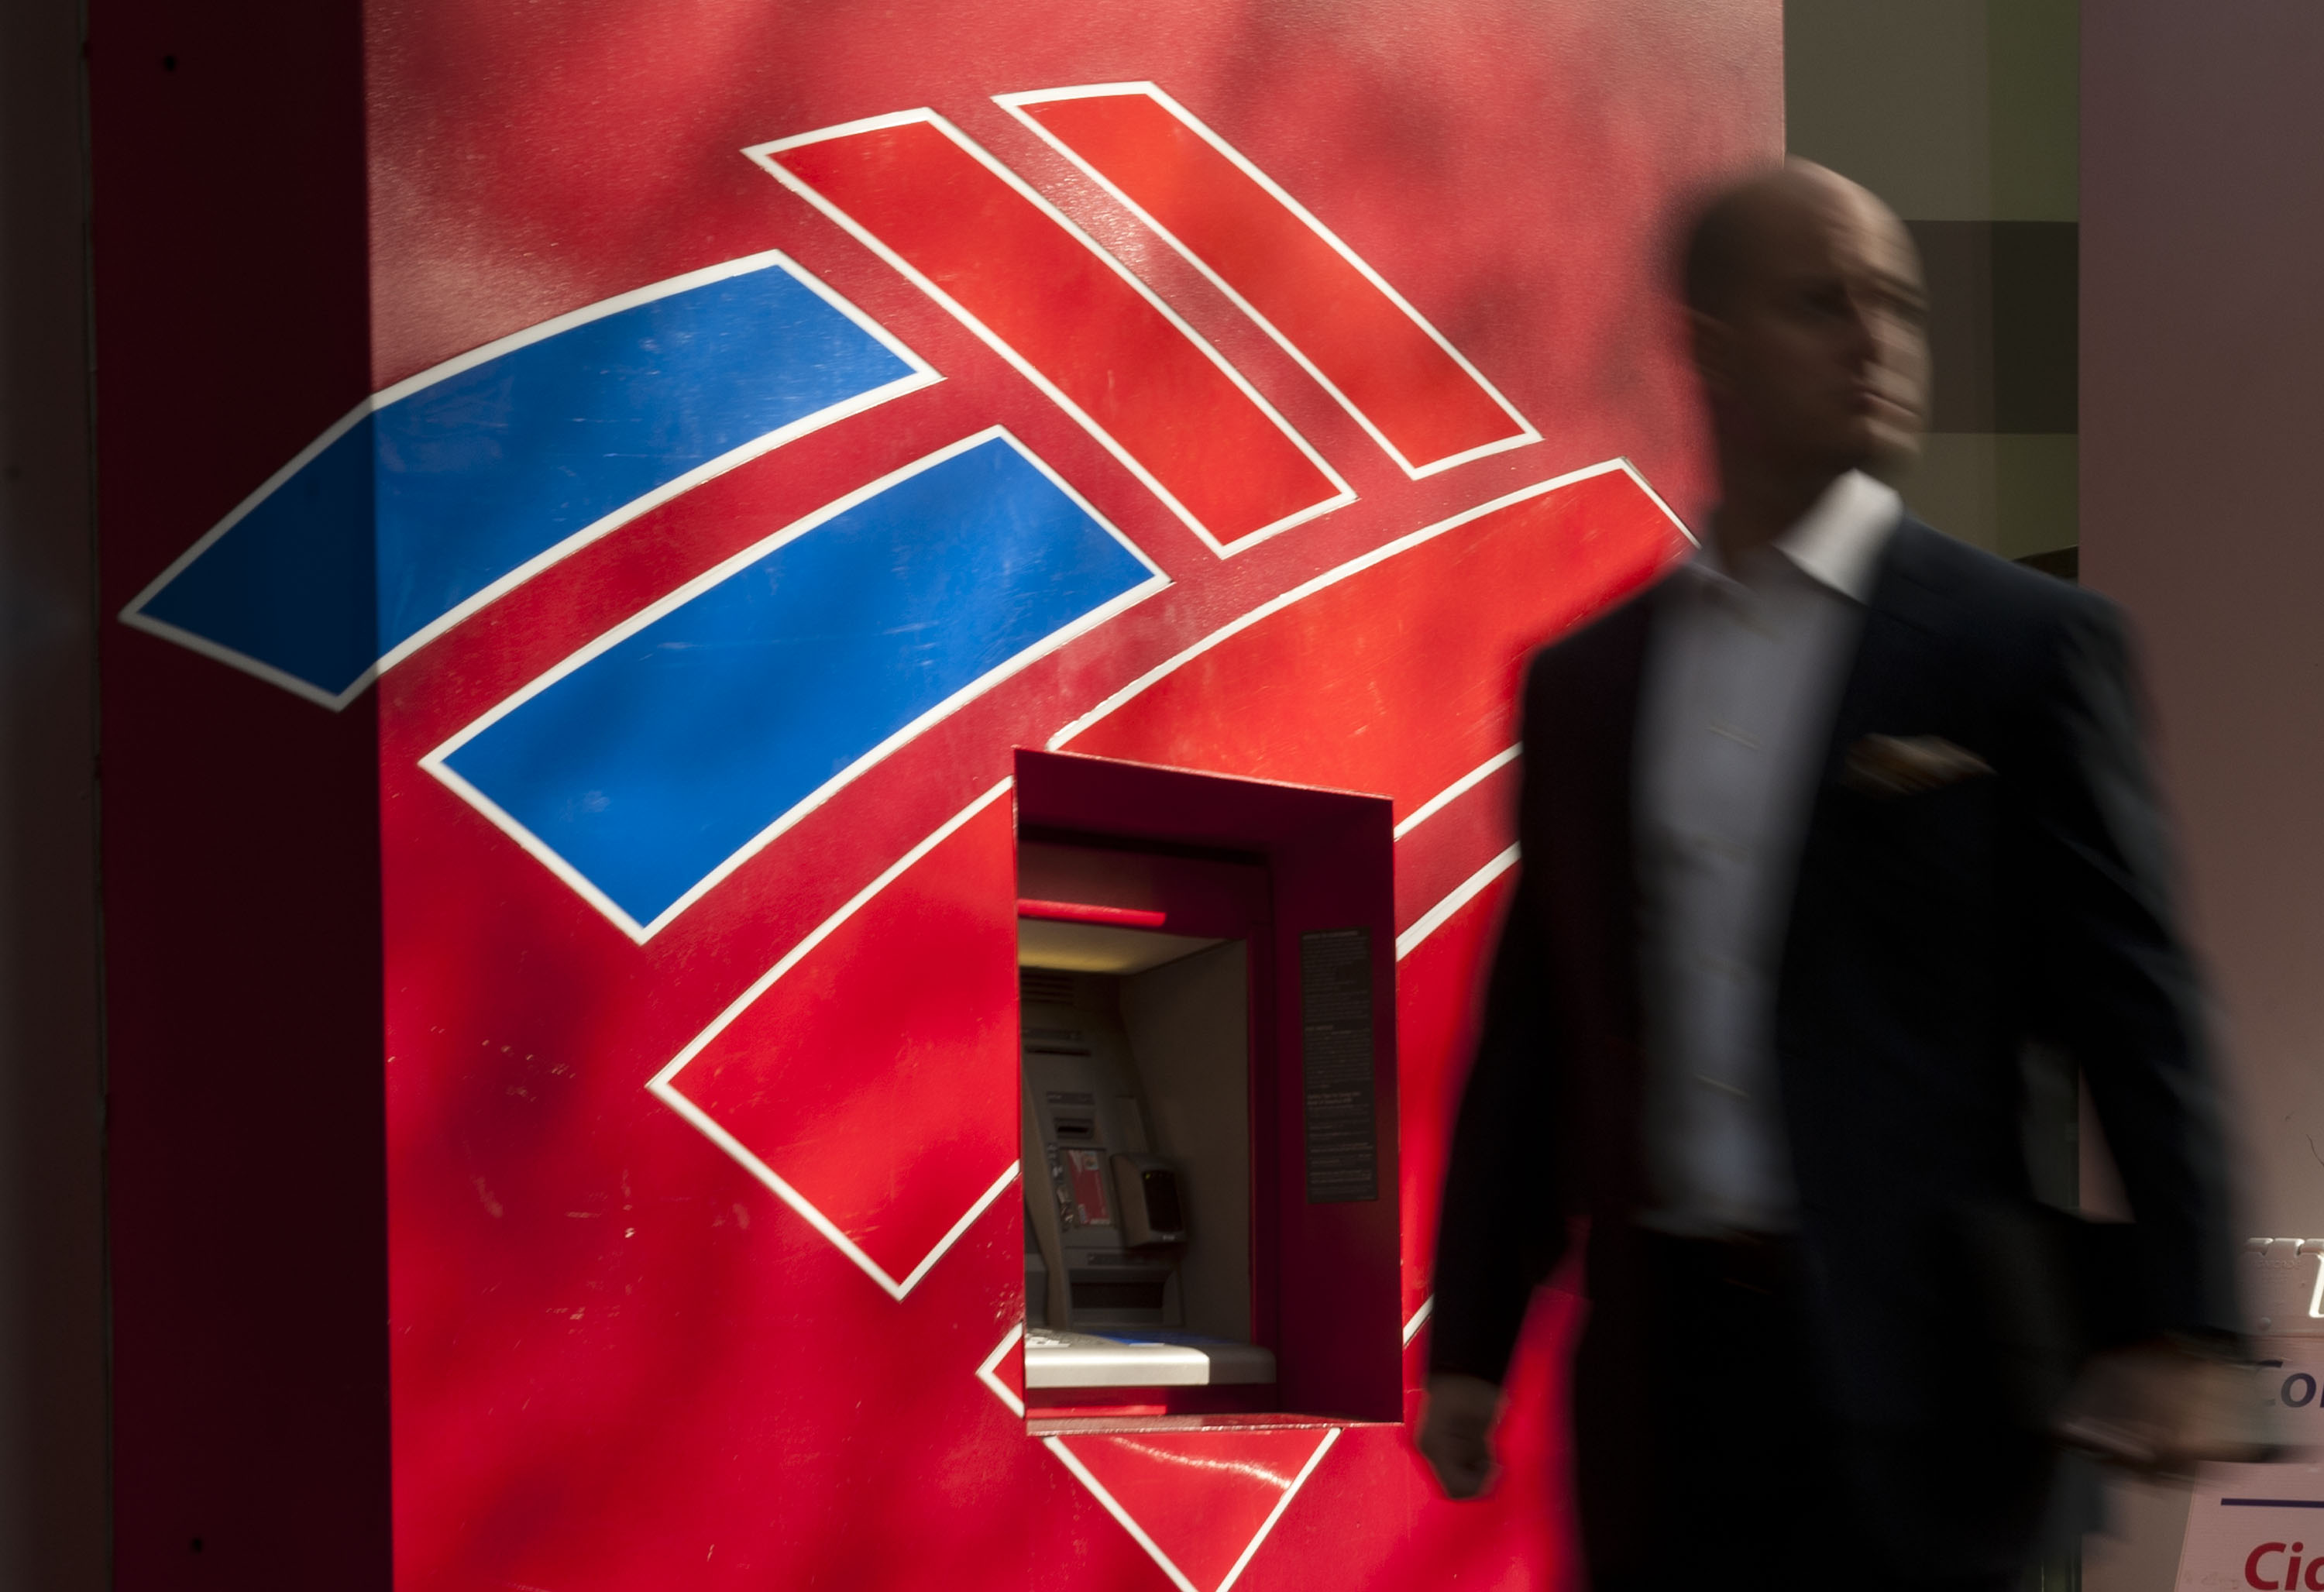 A man walks past a Bank of America ATM in Charlotte, N.C., May 8, 2013.